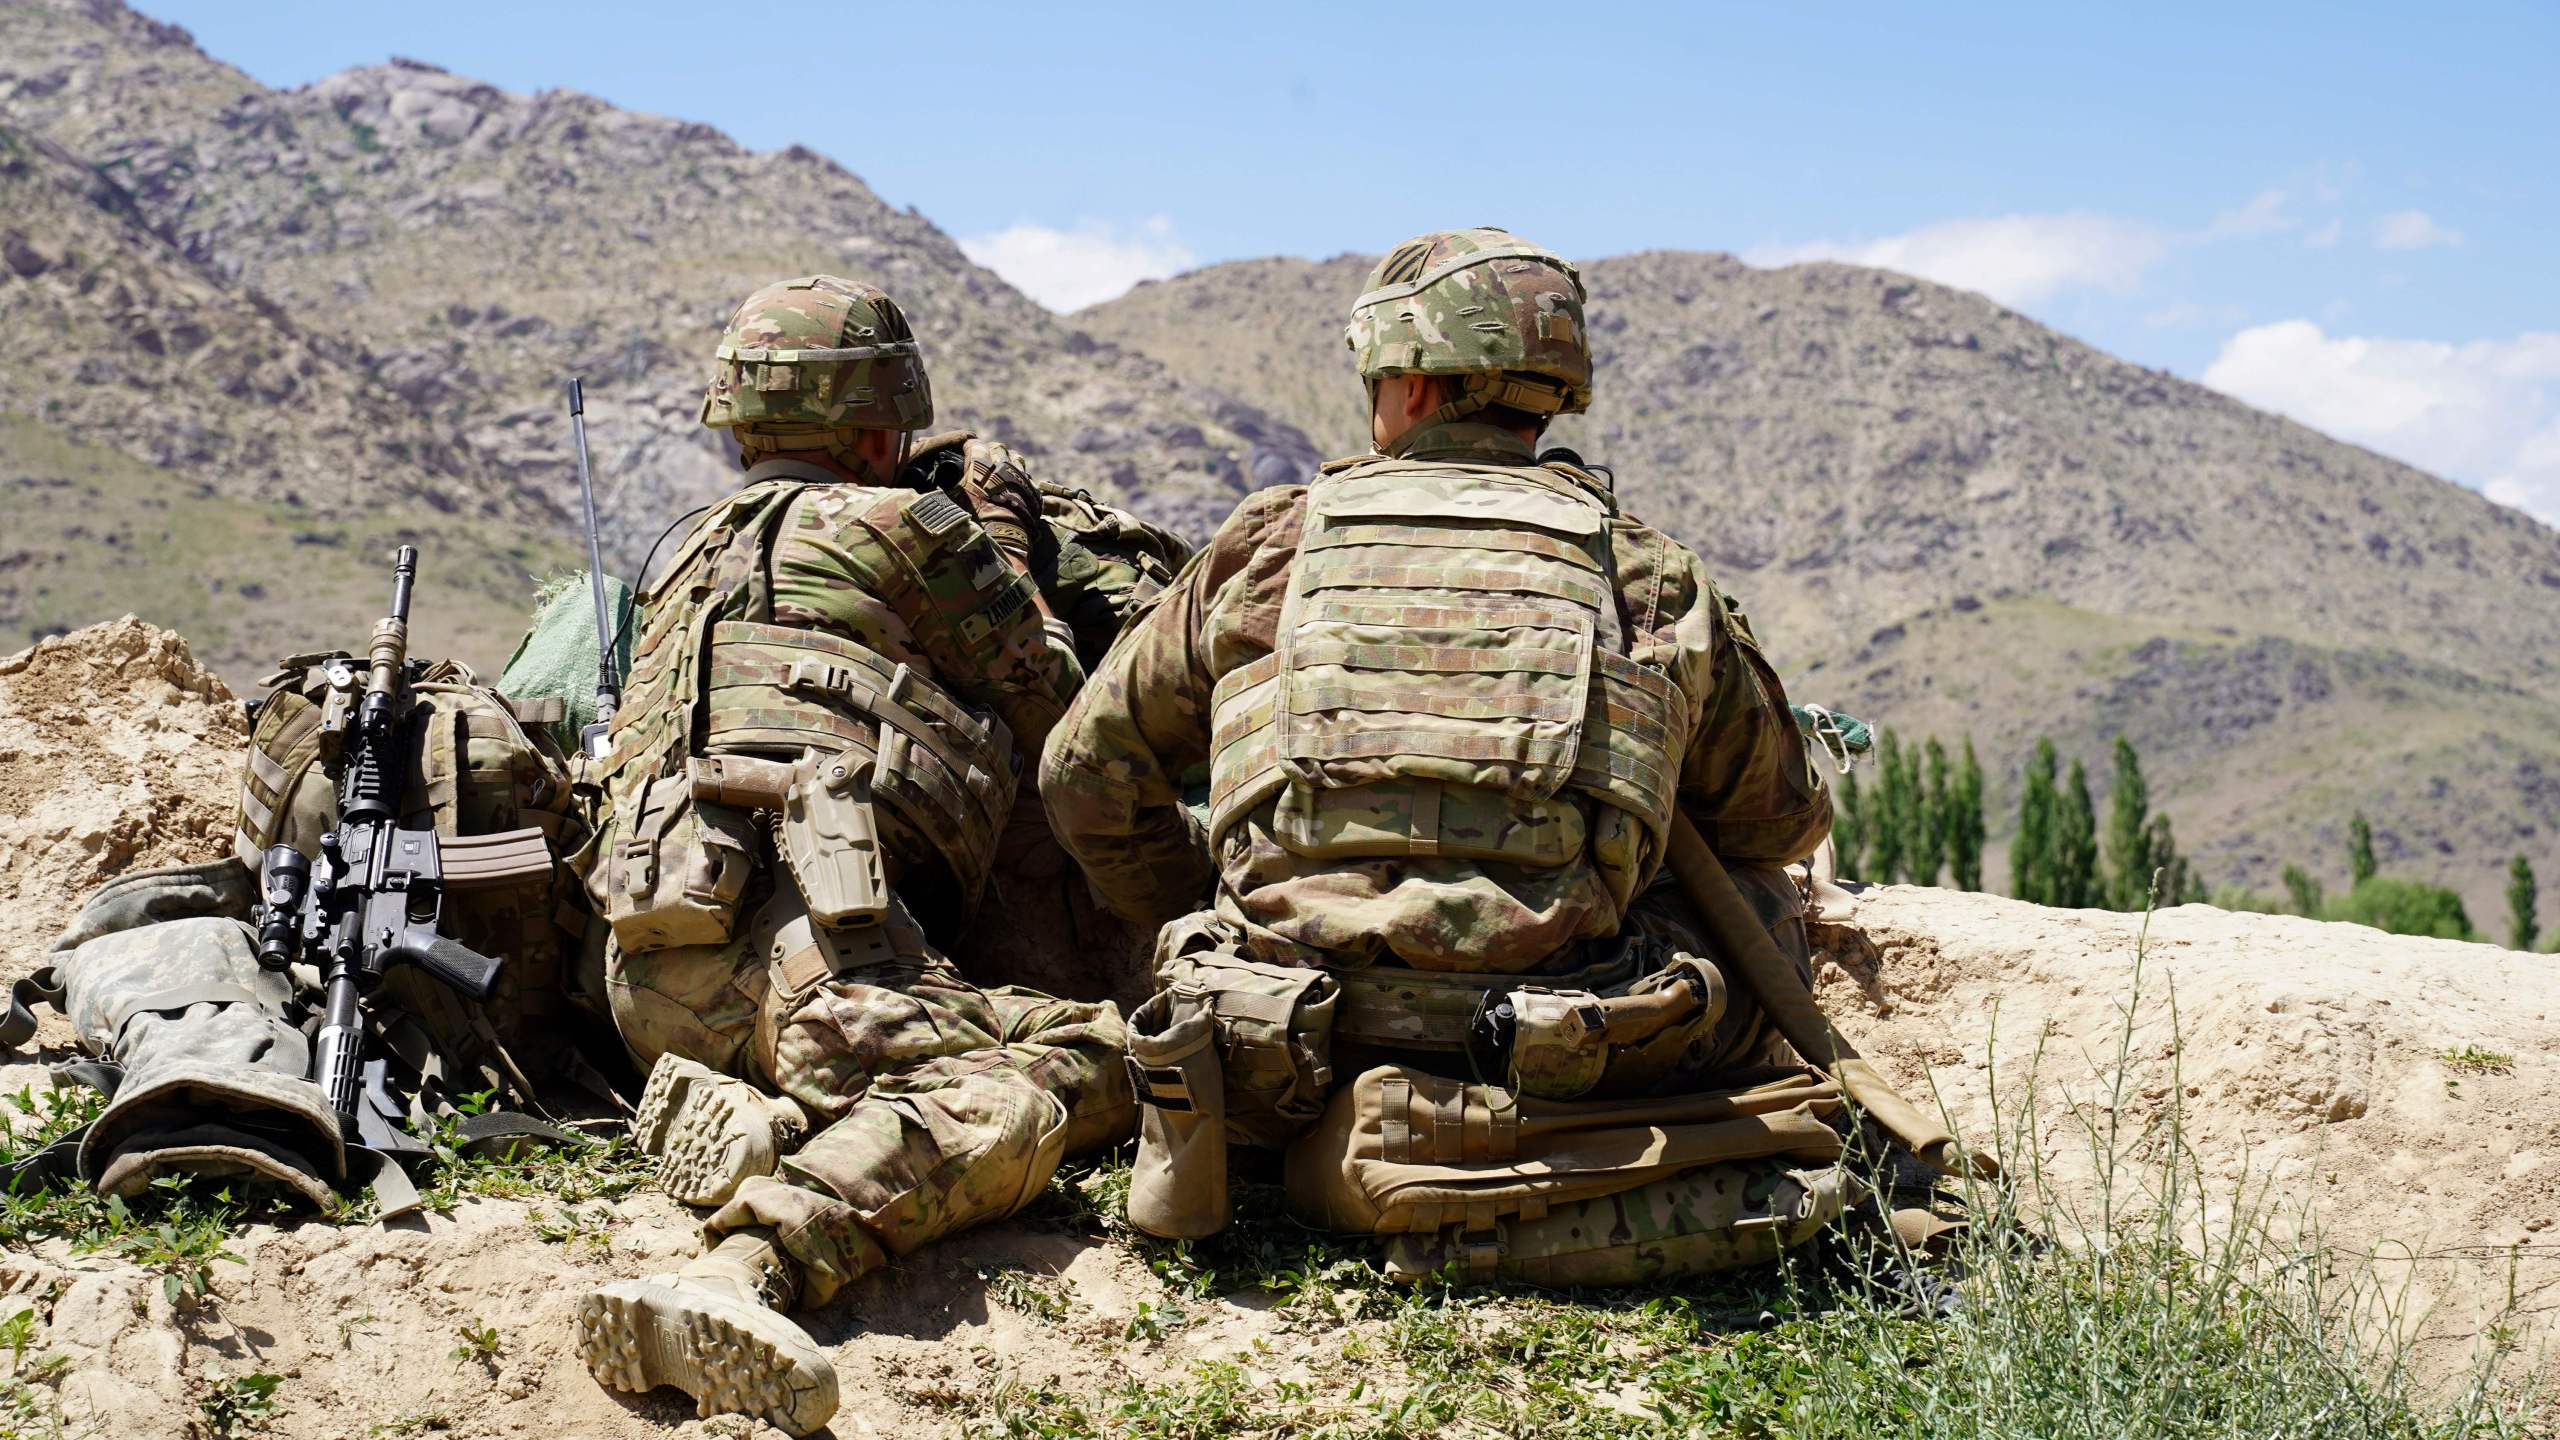 In this photo taken on June 6, 2019, US soldiers look out over hillsides during a visit of the commander of US and NATO forces in Afghanistan General Scott Miller at the Afghan National Army (ANA) checkpoint in Nerkh district of Wardak province. (THOMAS WATKINS/AFP via Getty Images)